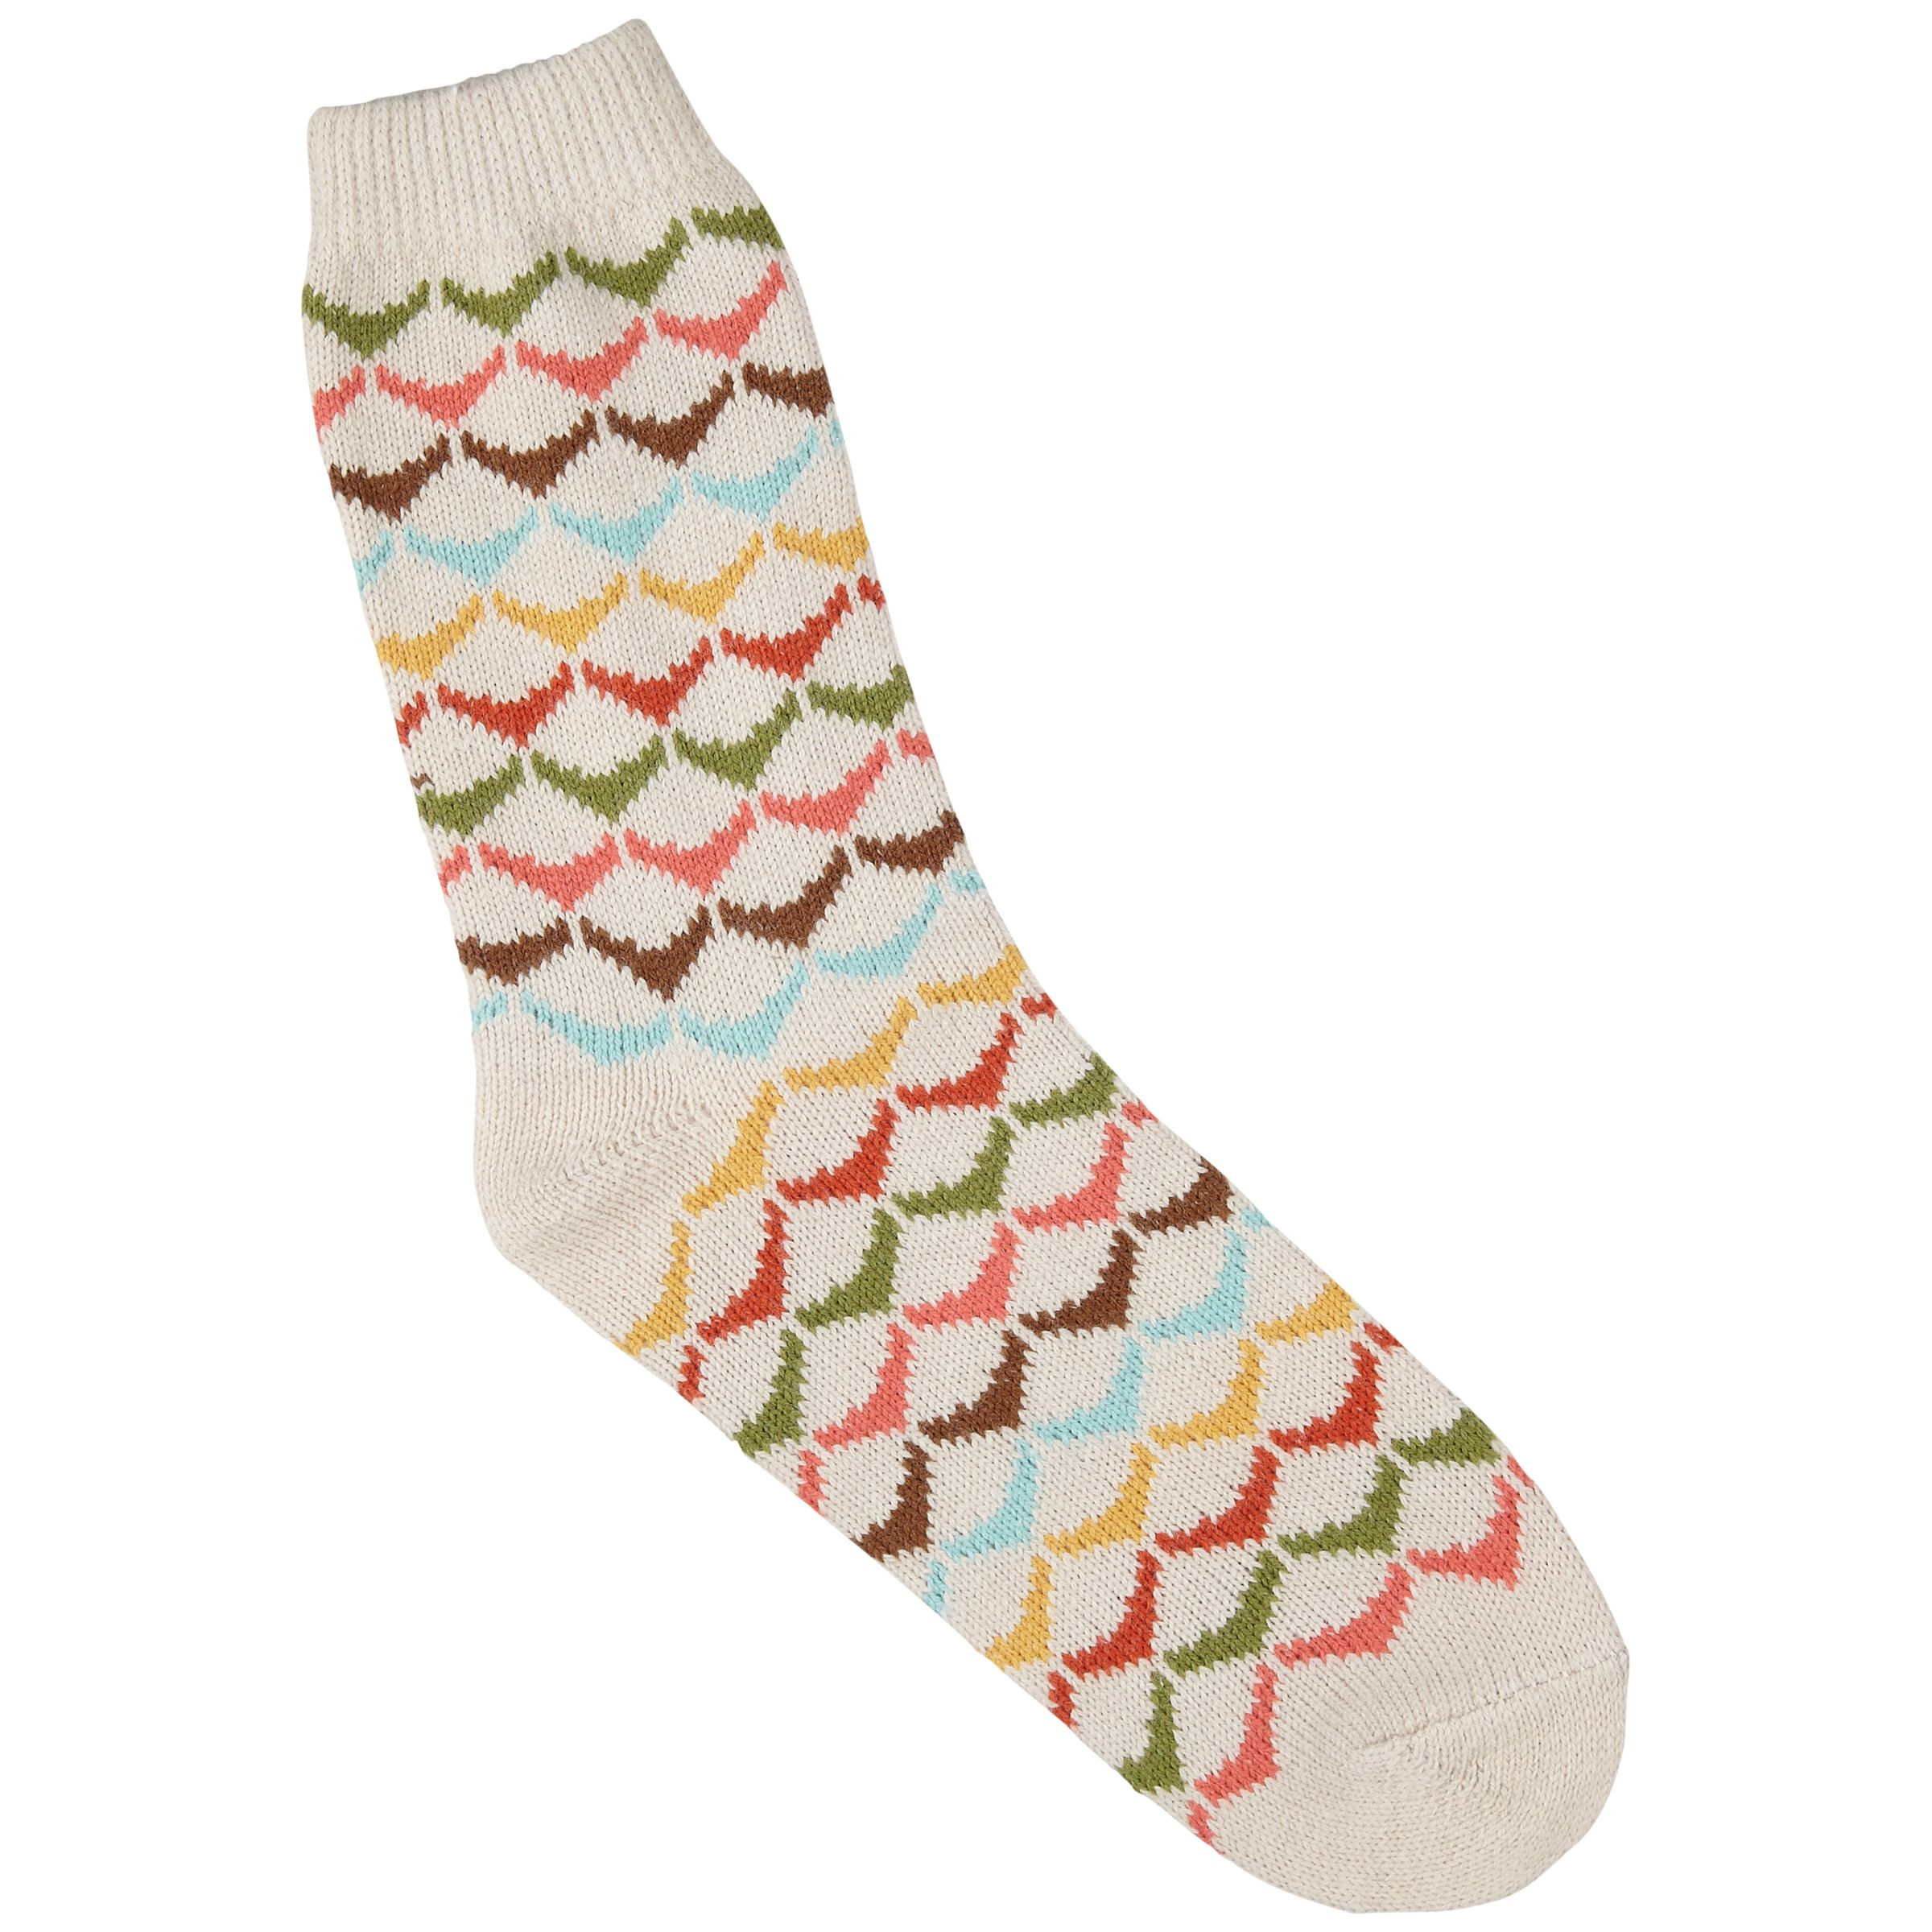 Aroma Home Owl Bed Socks, Multi